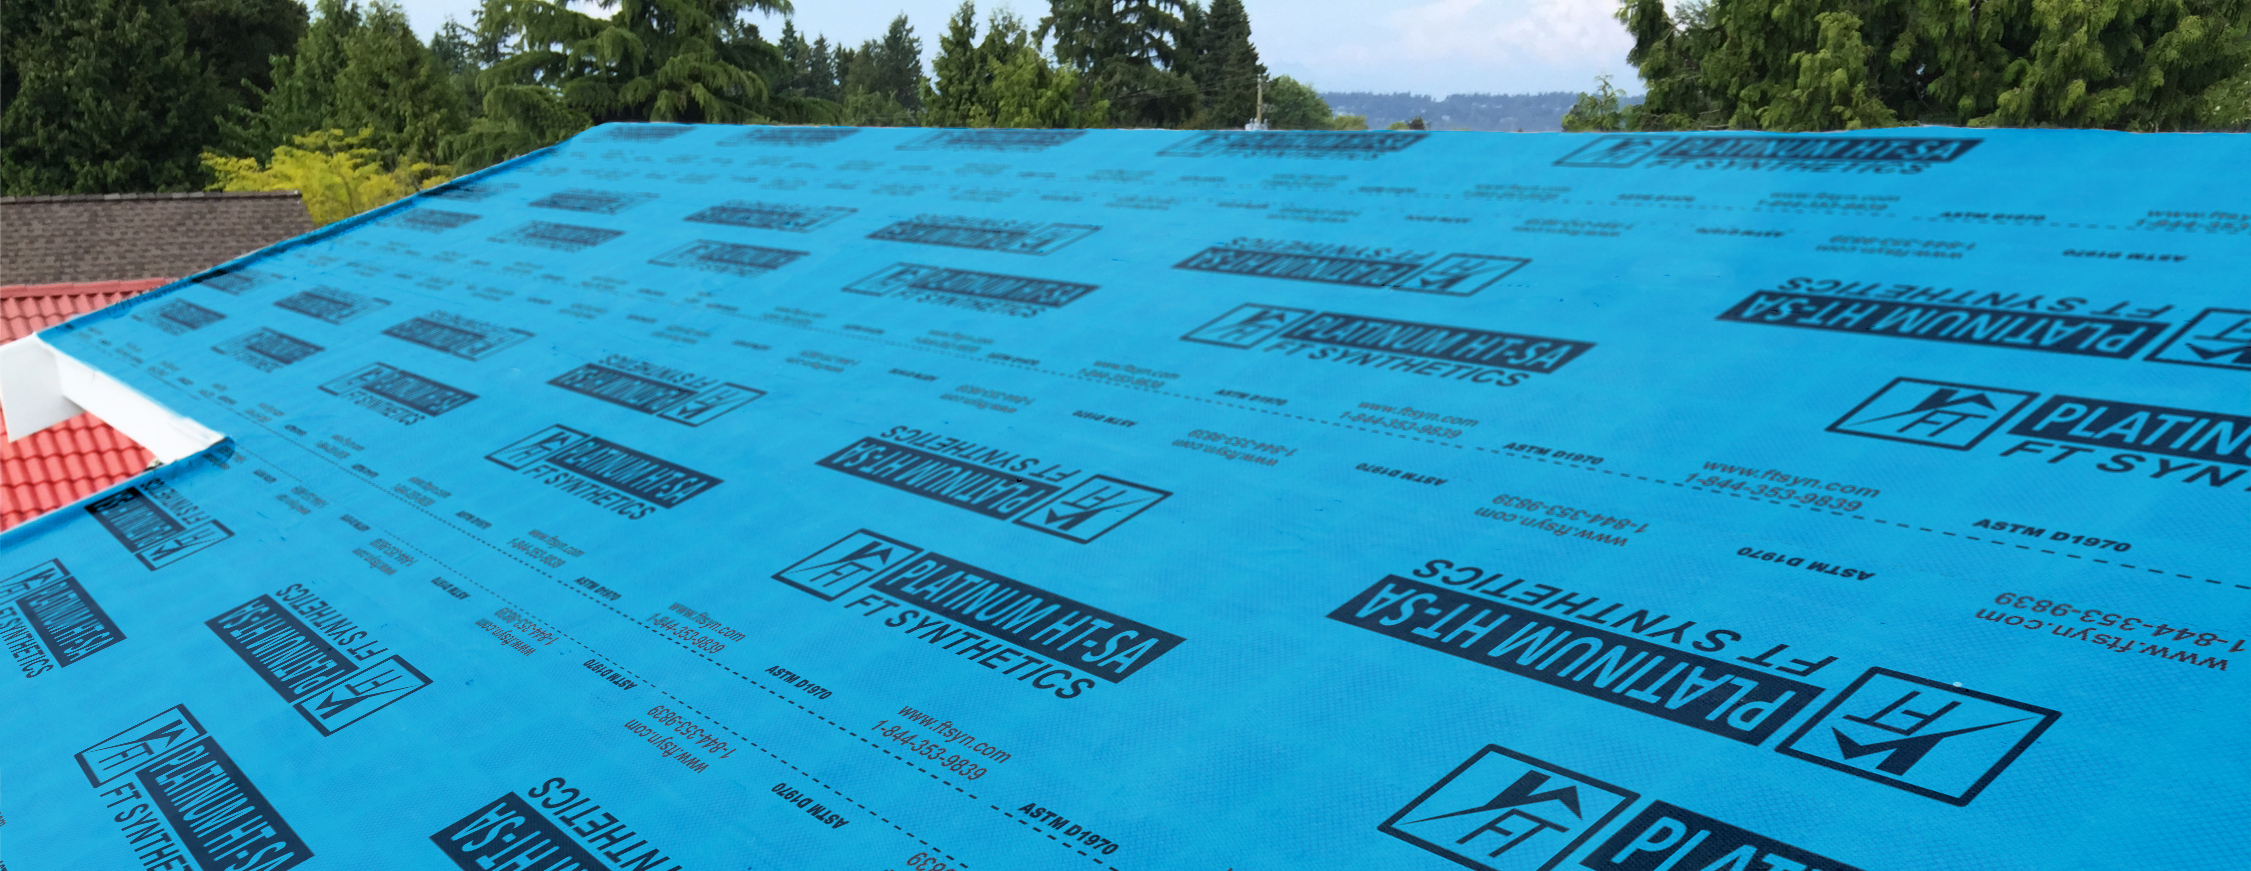 Ft Synthetics We Make Roofing Safer Ft Synthetics